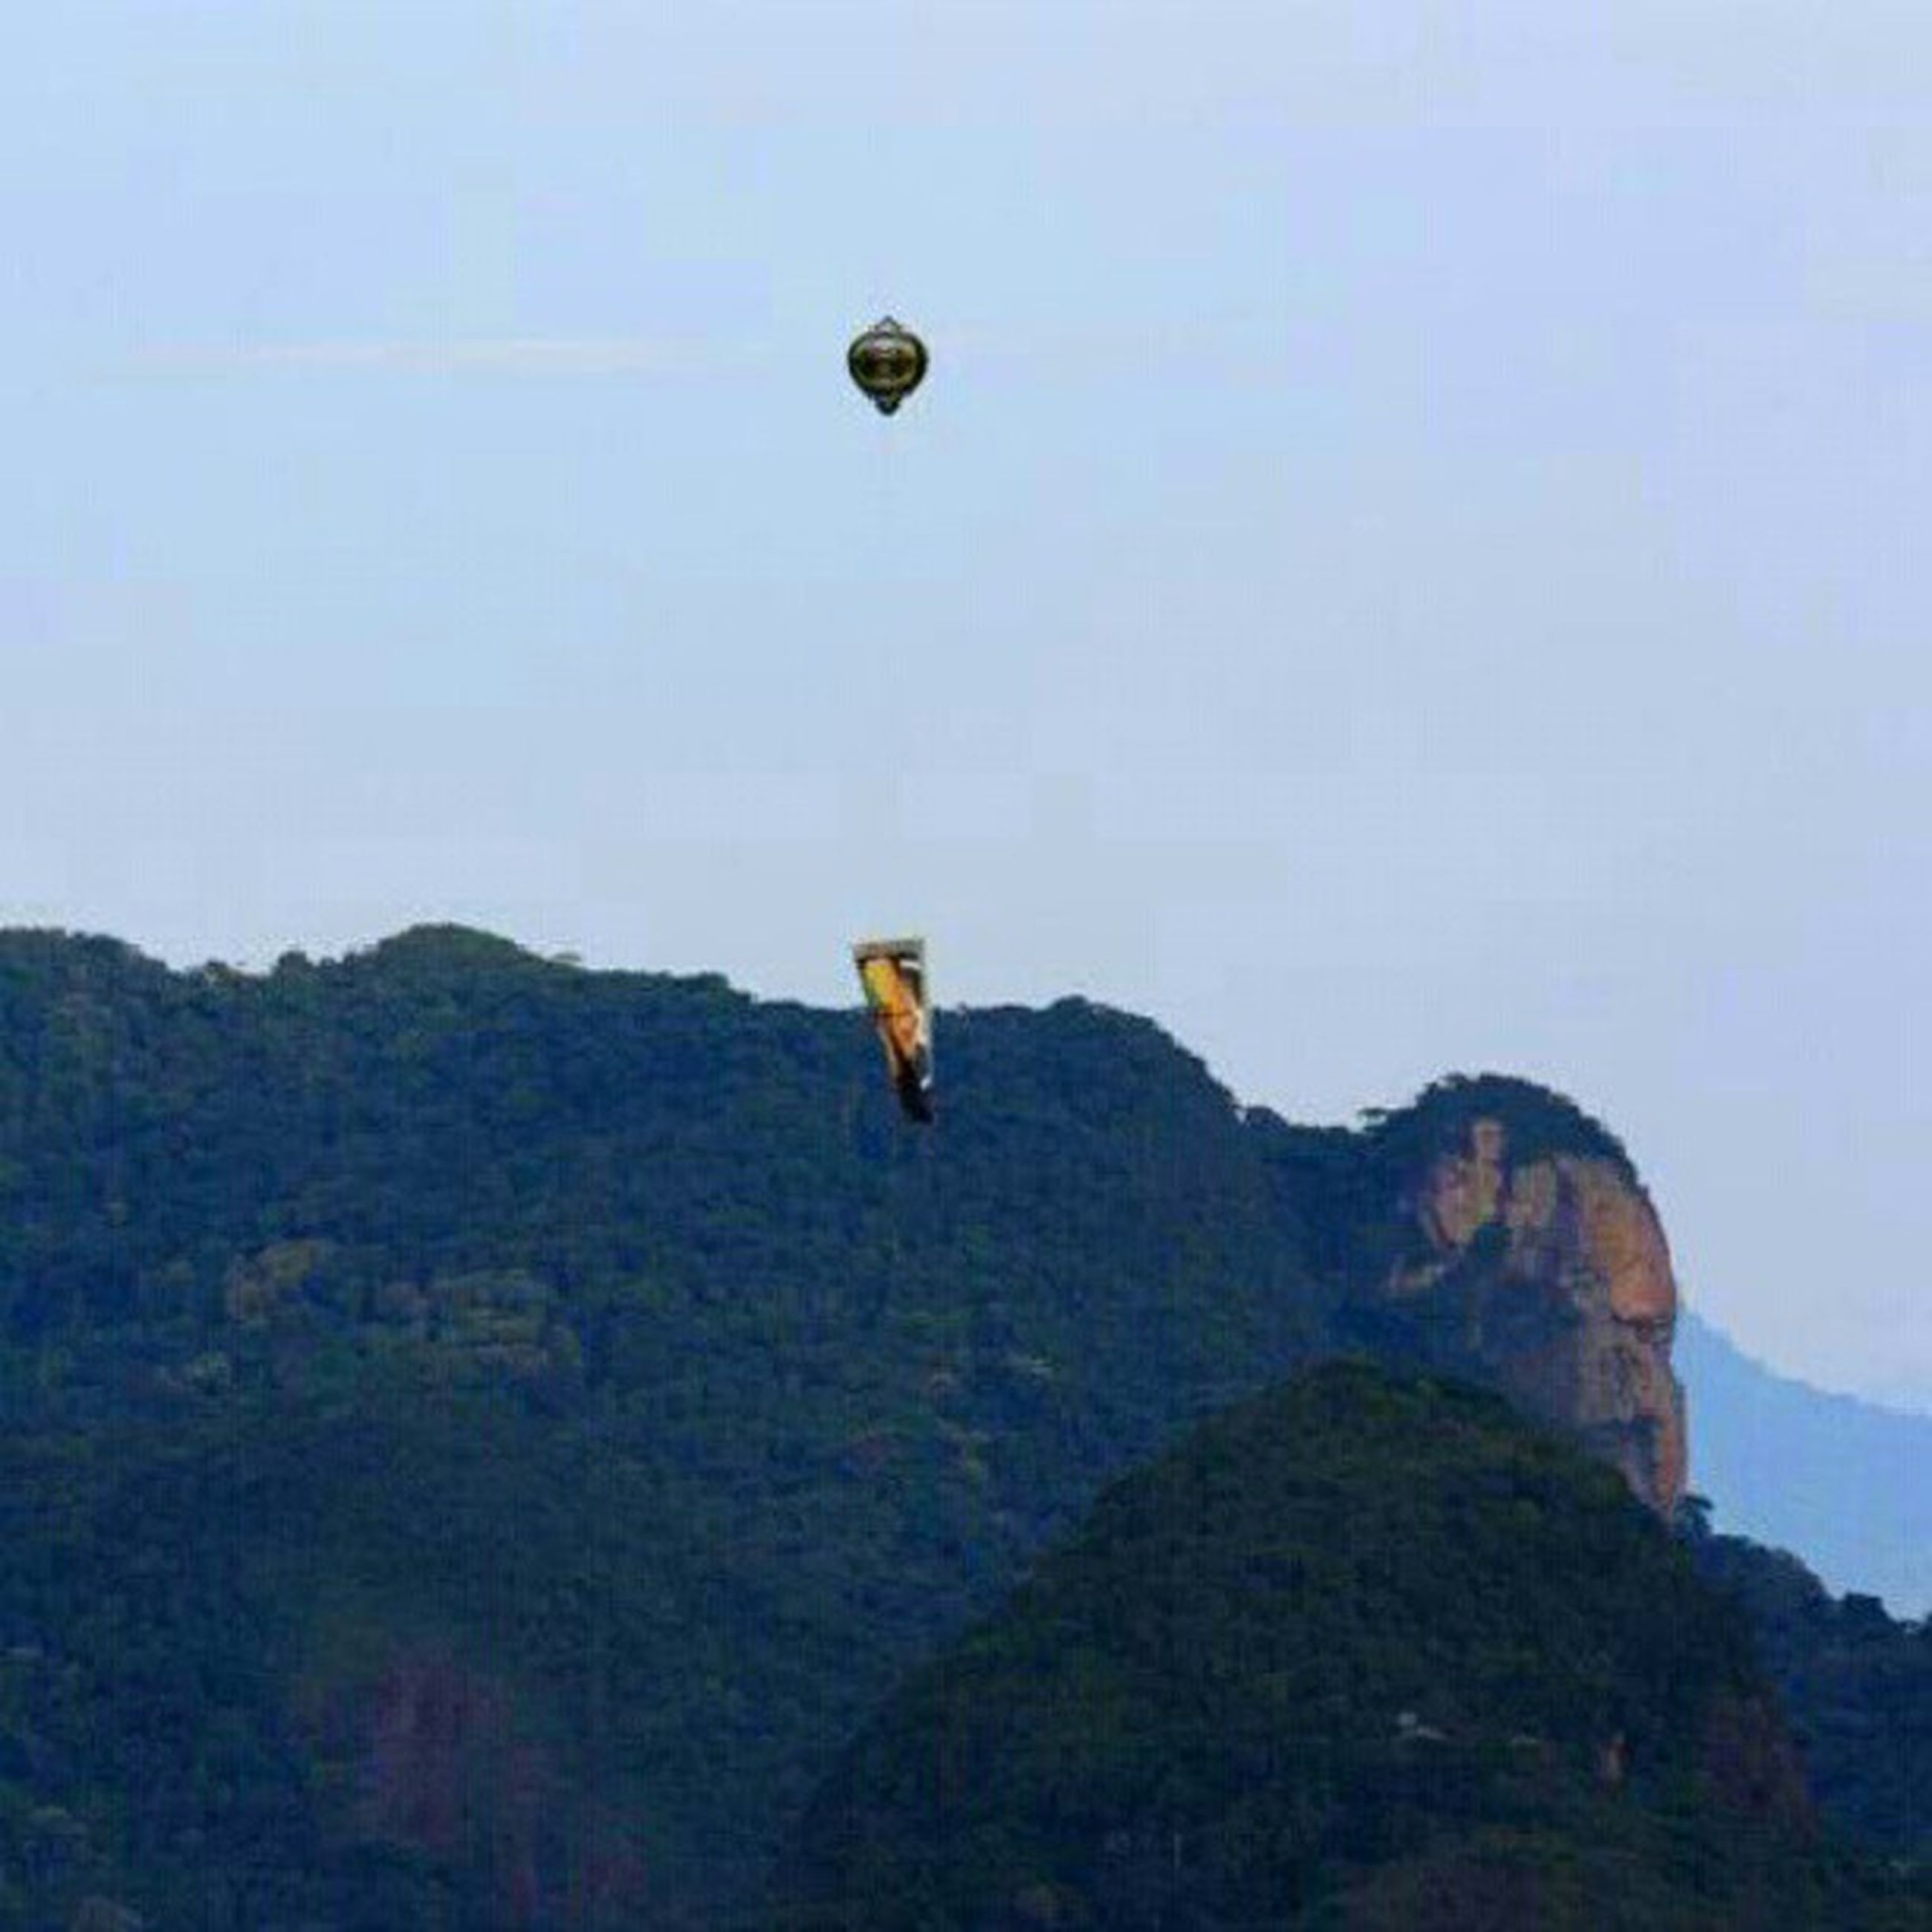 flying, mid-air, hot air balloon, clear sky, mountain, adventure, copy space, low angle view, parachute, scenics, sky, tranquility, tranquil scene, paragliding, beauty in nature, nature, transportation, leisure activity, extreme sports